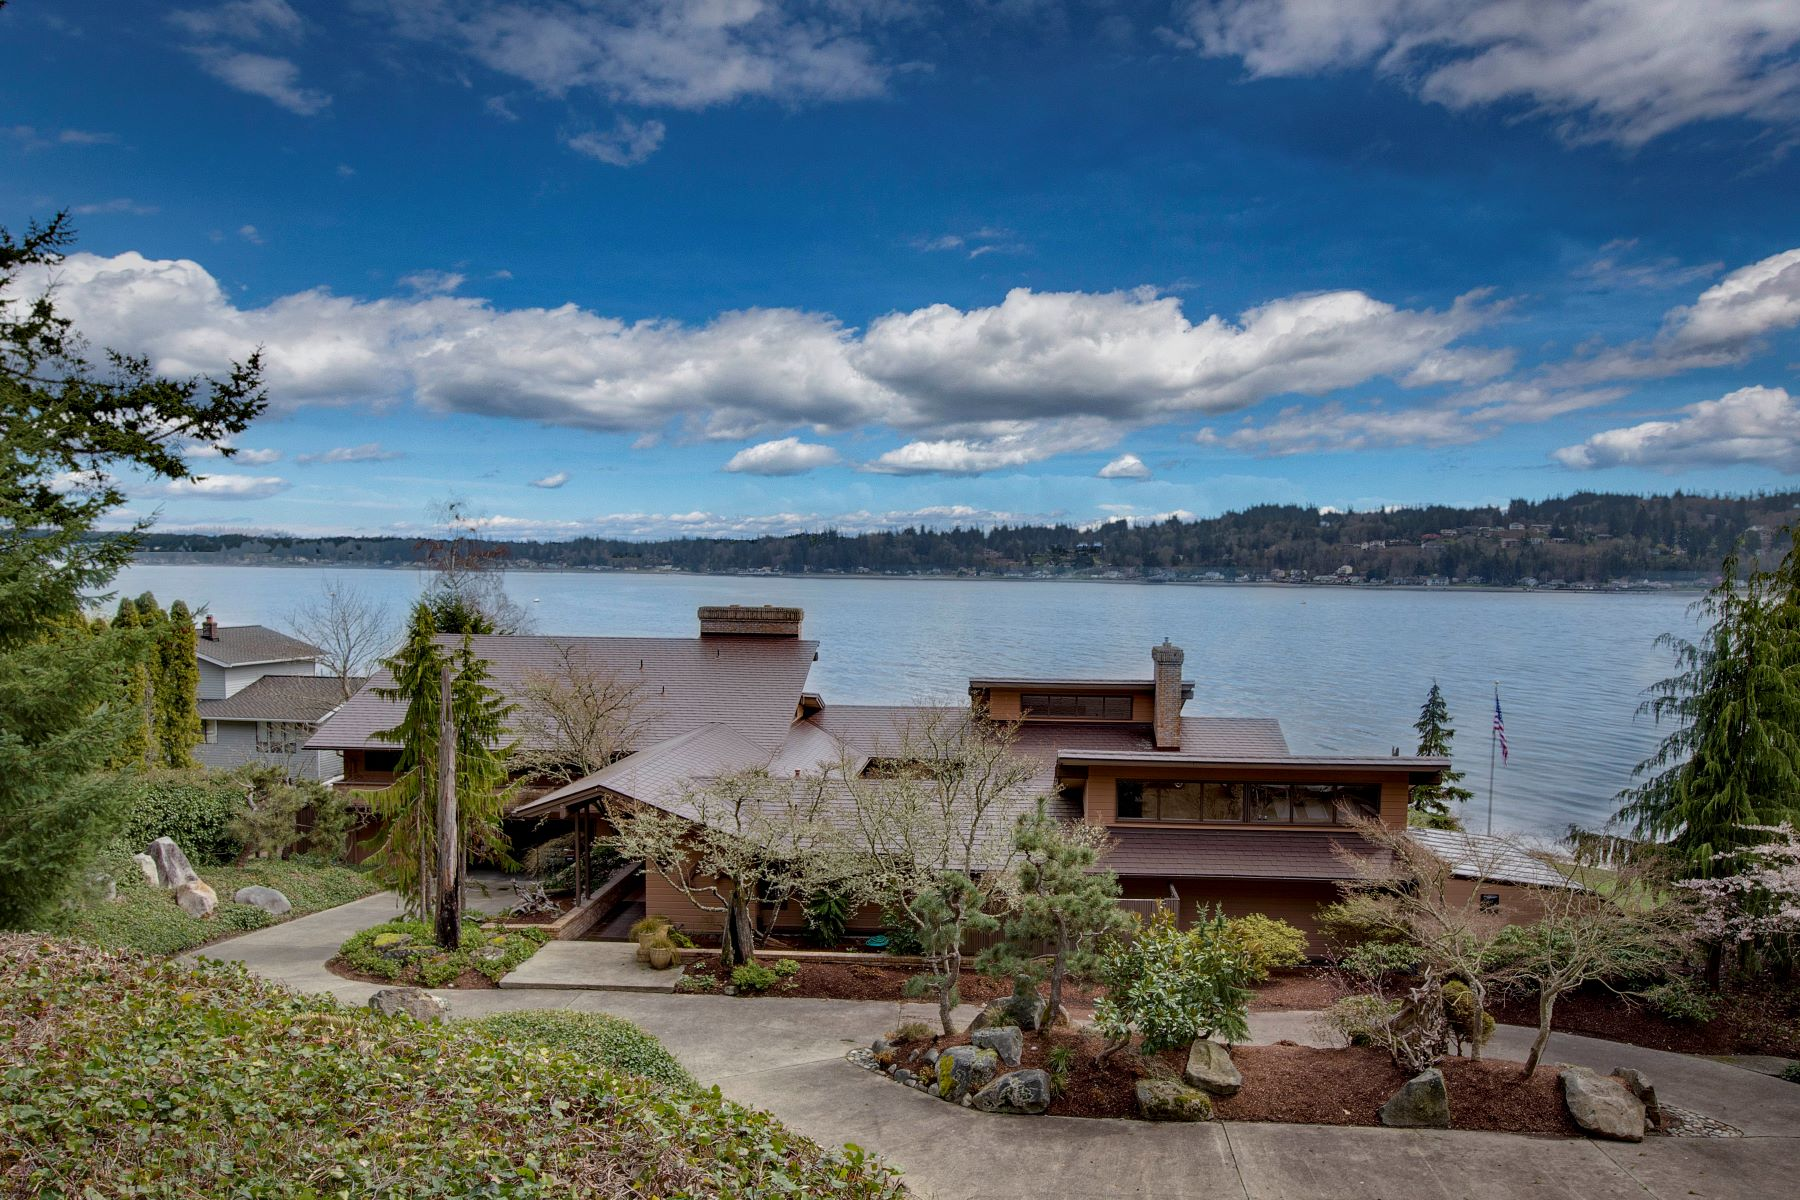 Single Family Home for Sale at Magnificent Waterfront Estate 1334 Jacobsen Blvd Bremerton, Washington 98310 United States